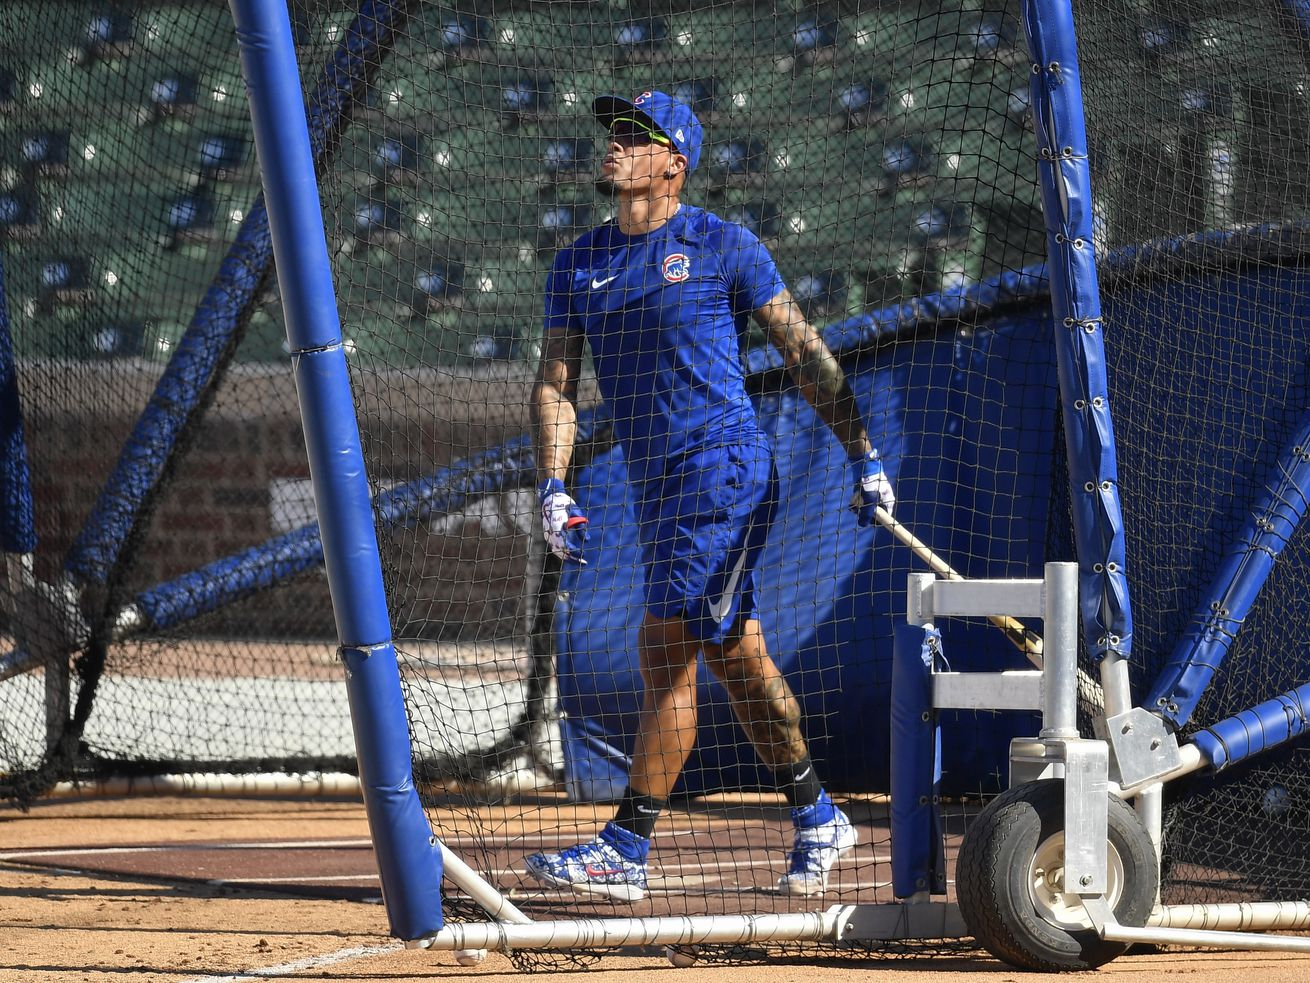 Fake fans are chanting his name at Wrigley, but will Javy Baez be the Cubs' top priority?